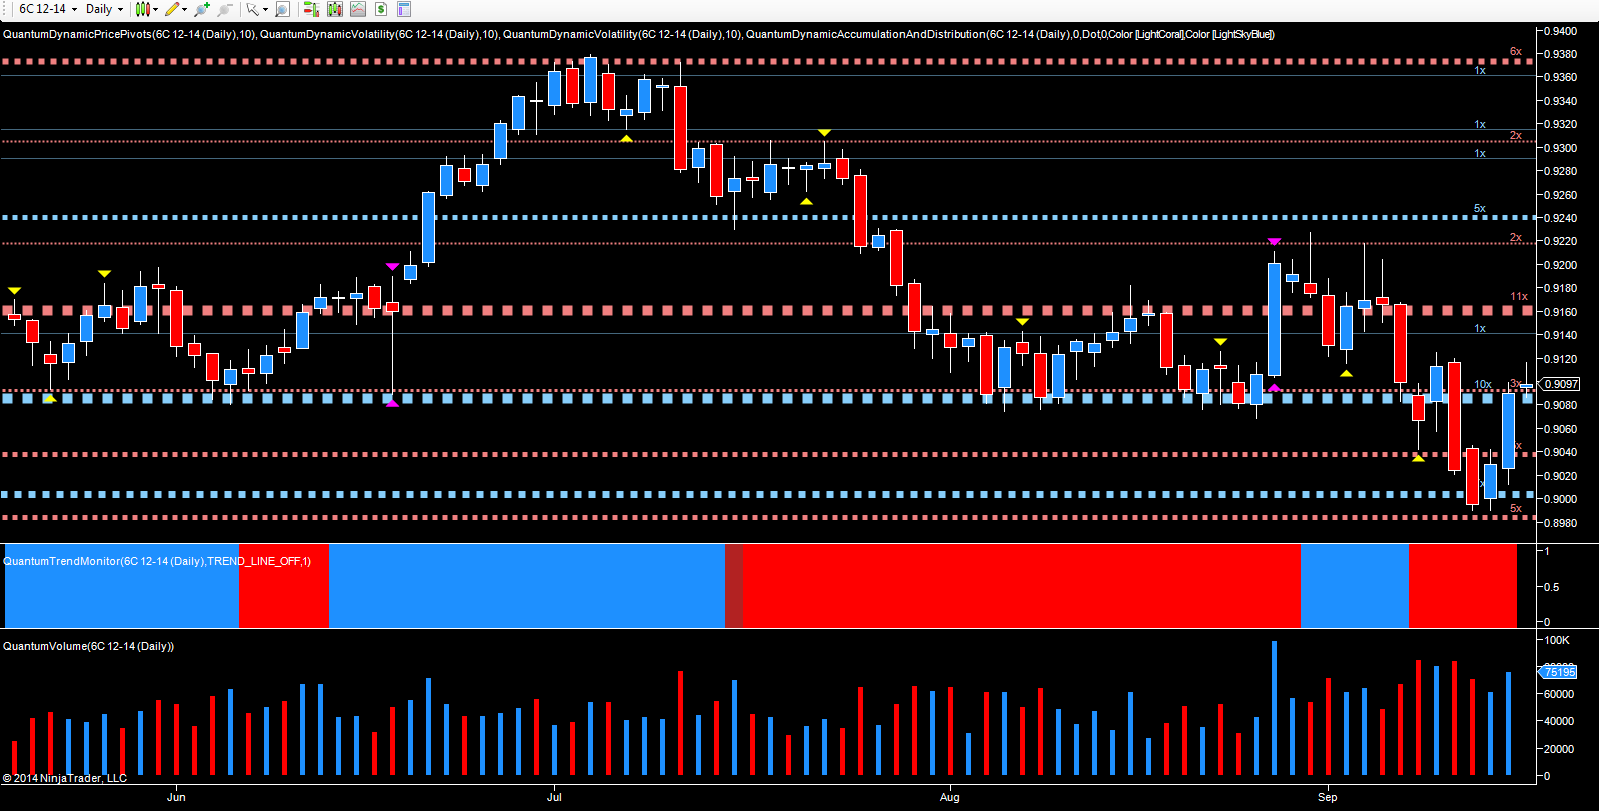 CAD/USD - December futures daily chart